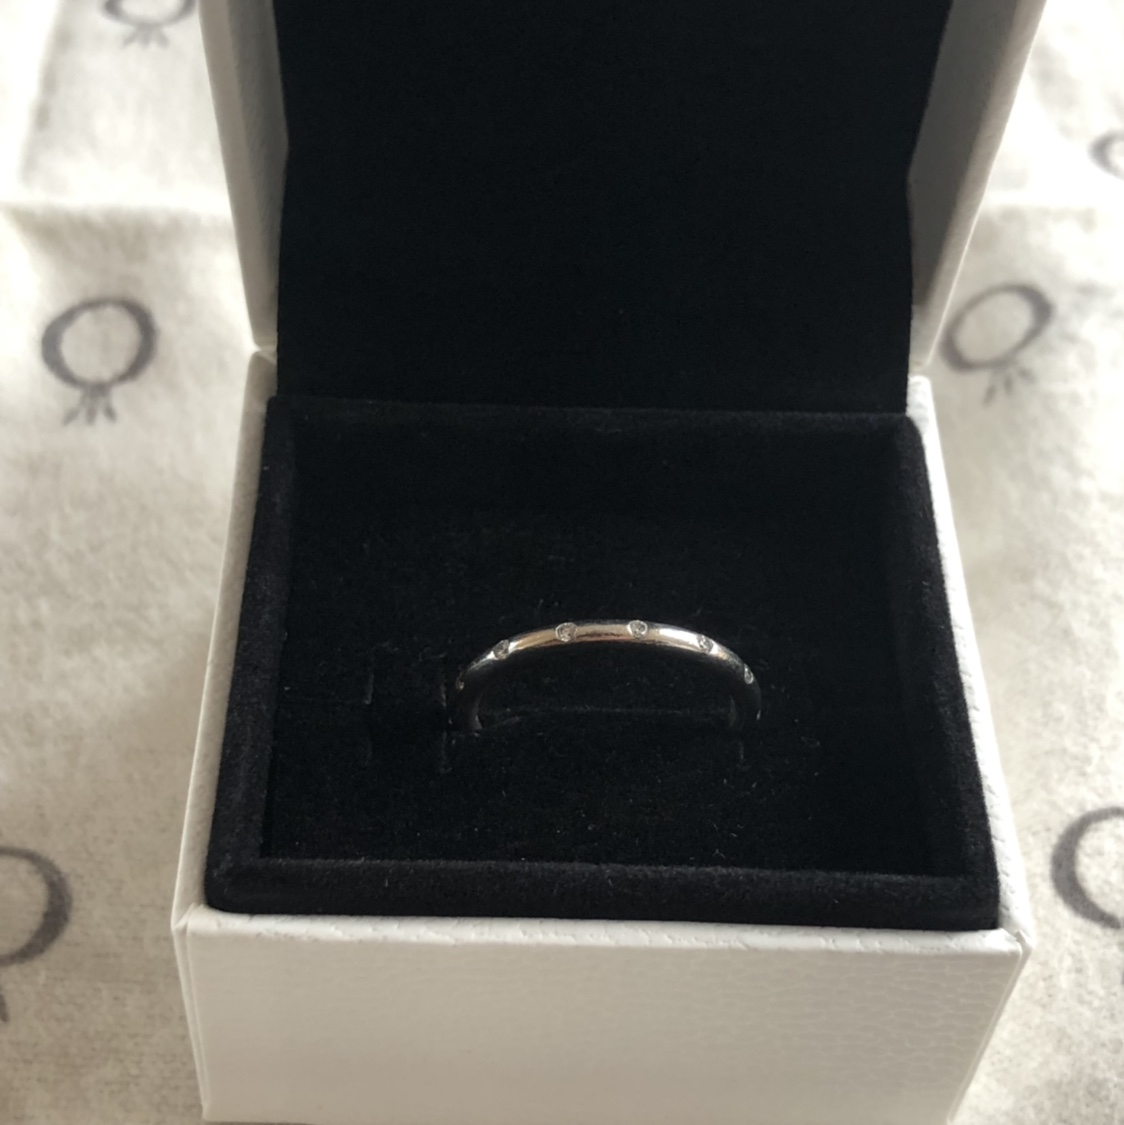 Pandora Simple Sparkling Band Ring Sterling Silver, – Depop For Most Up To Date Simple Sparkling Band Rings (View 12 of 25)